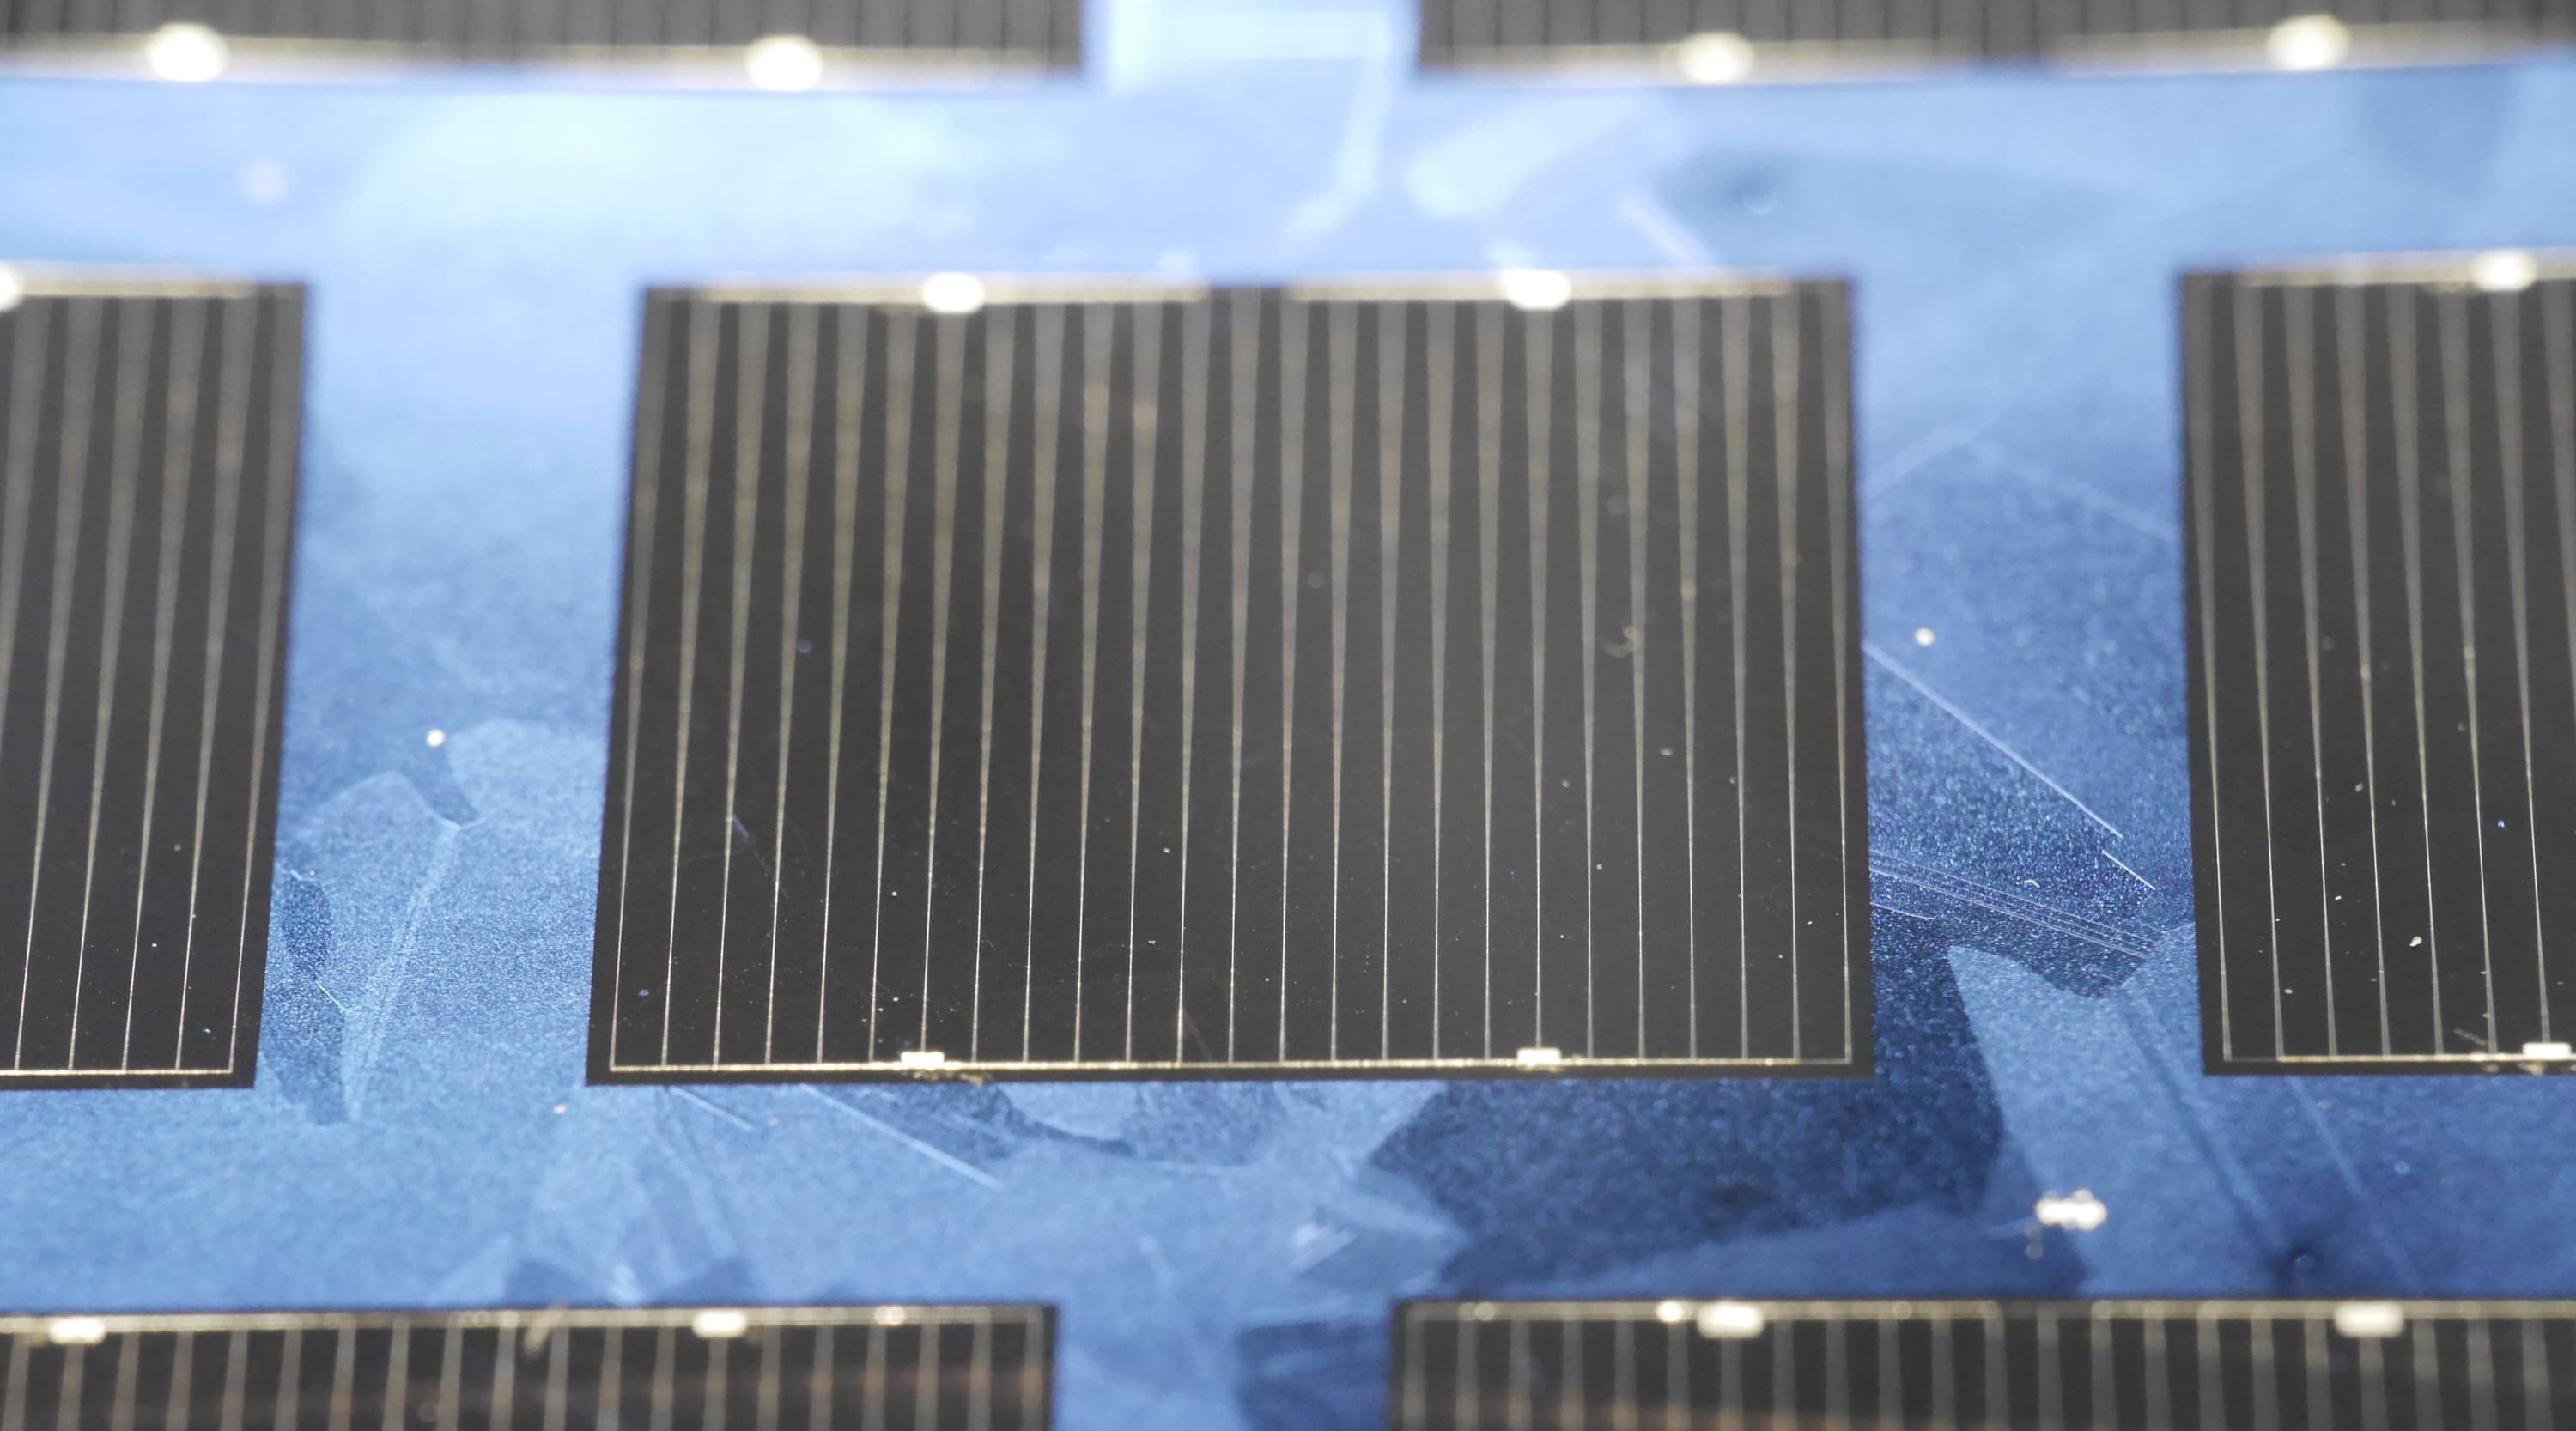 Fraunhoffer Fraunhofer ISE Claims New Solar Cell Efficiency Record